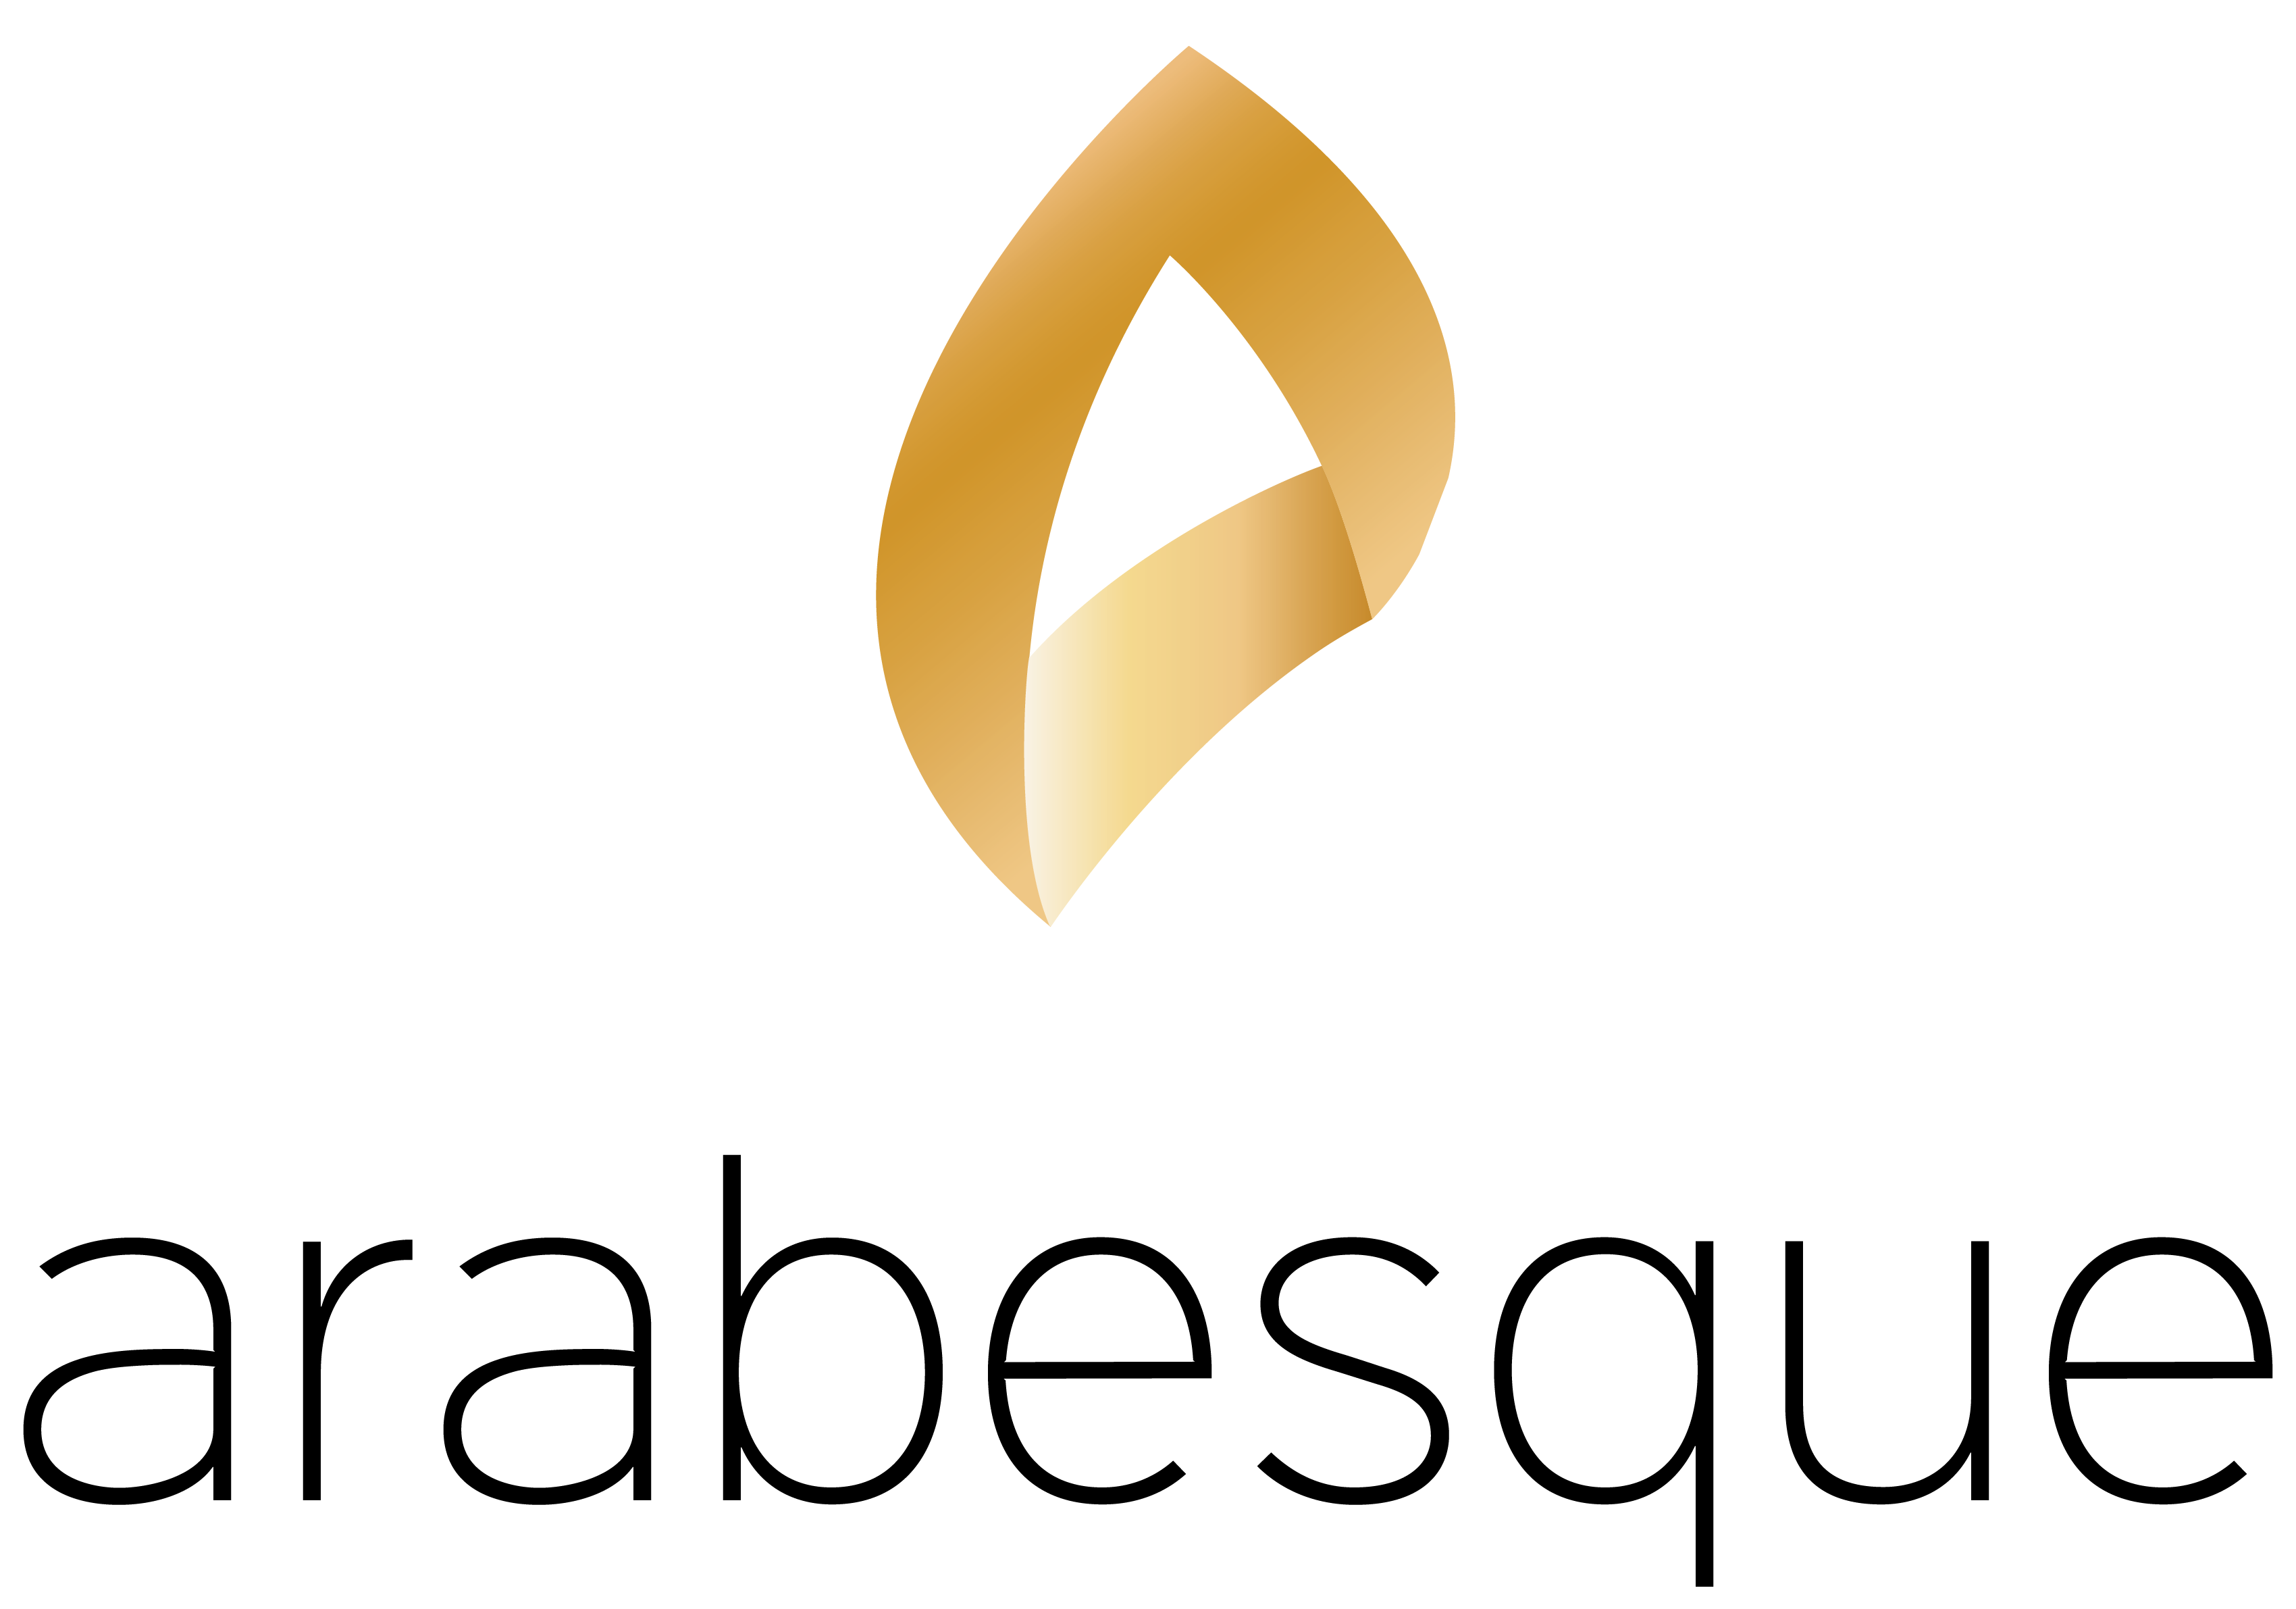 https://arabesque.com/